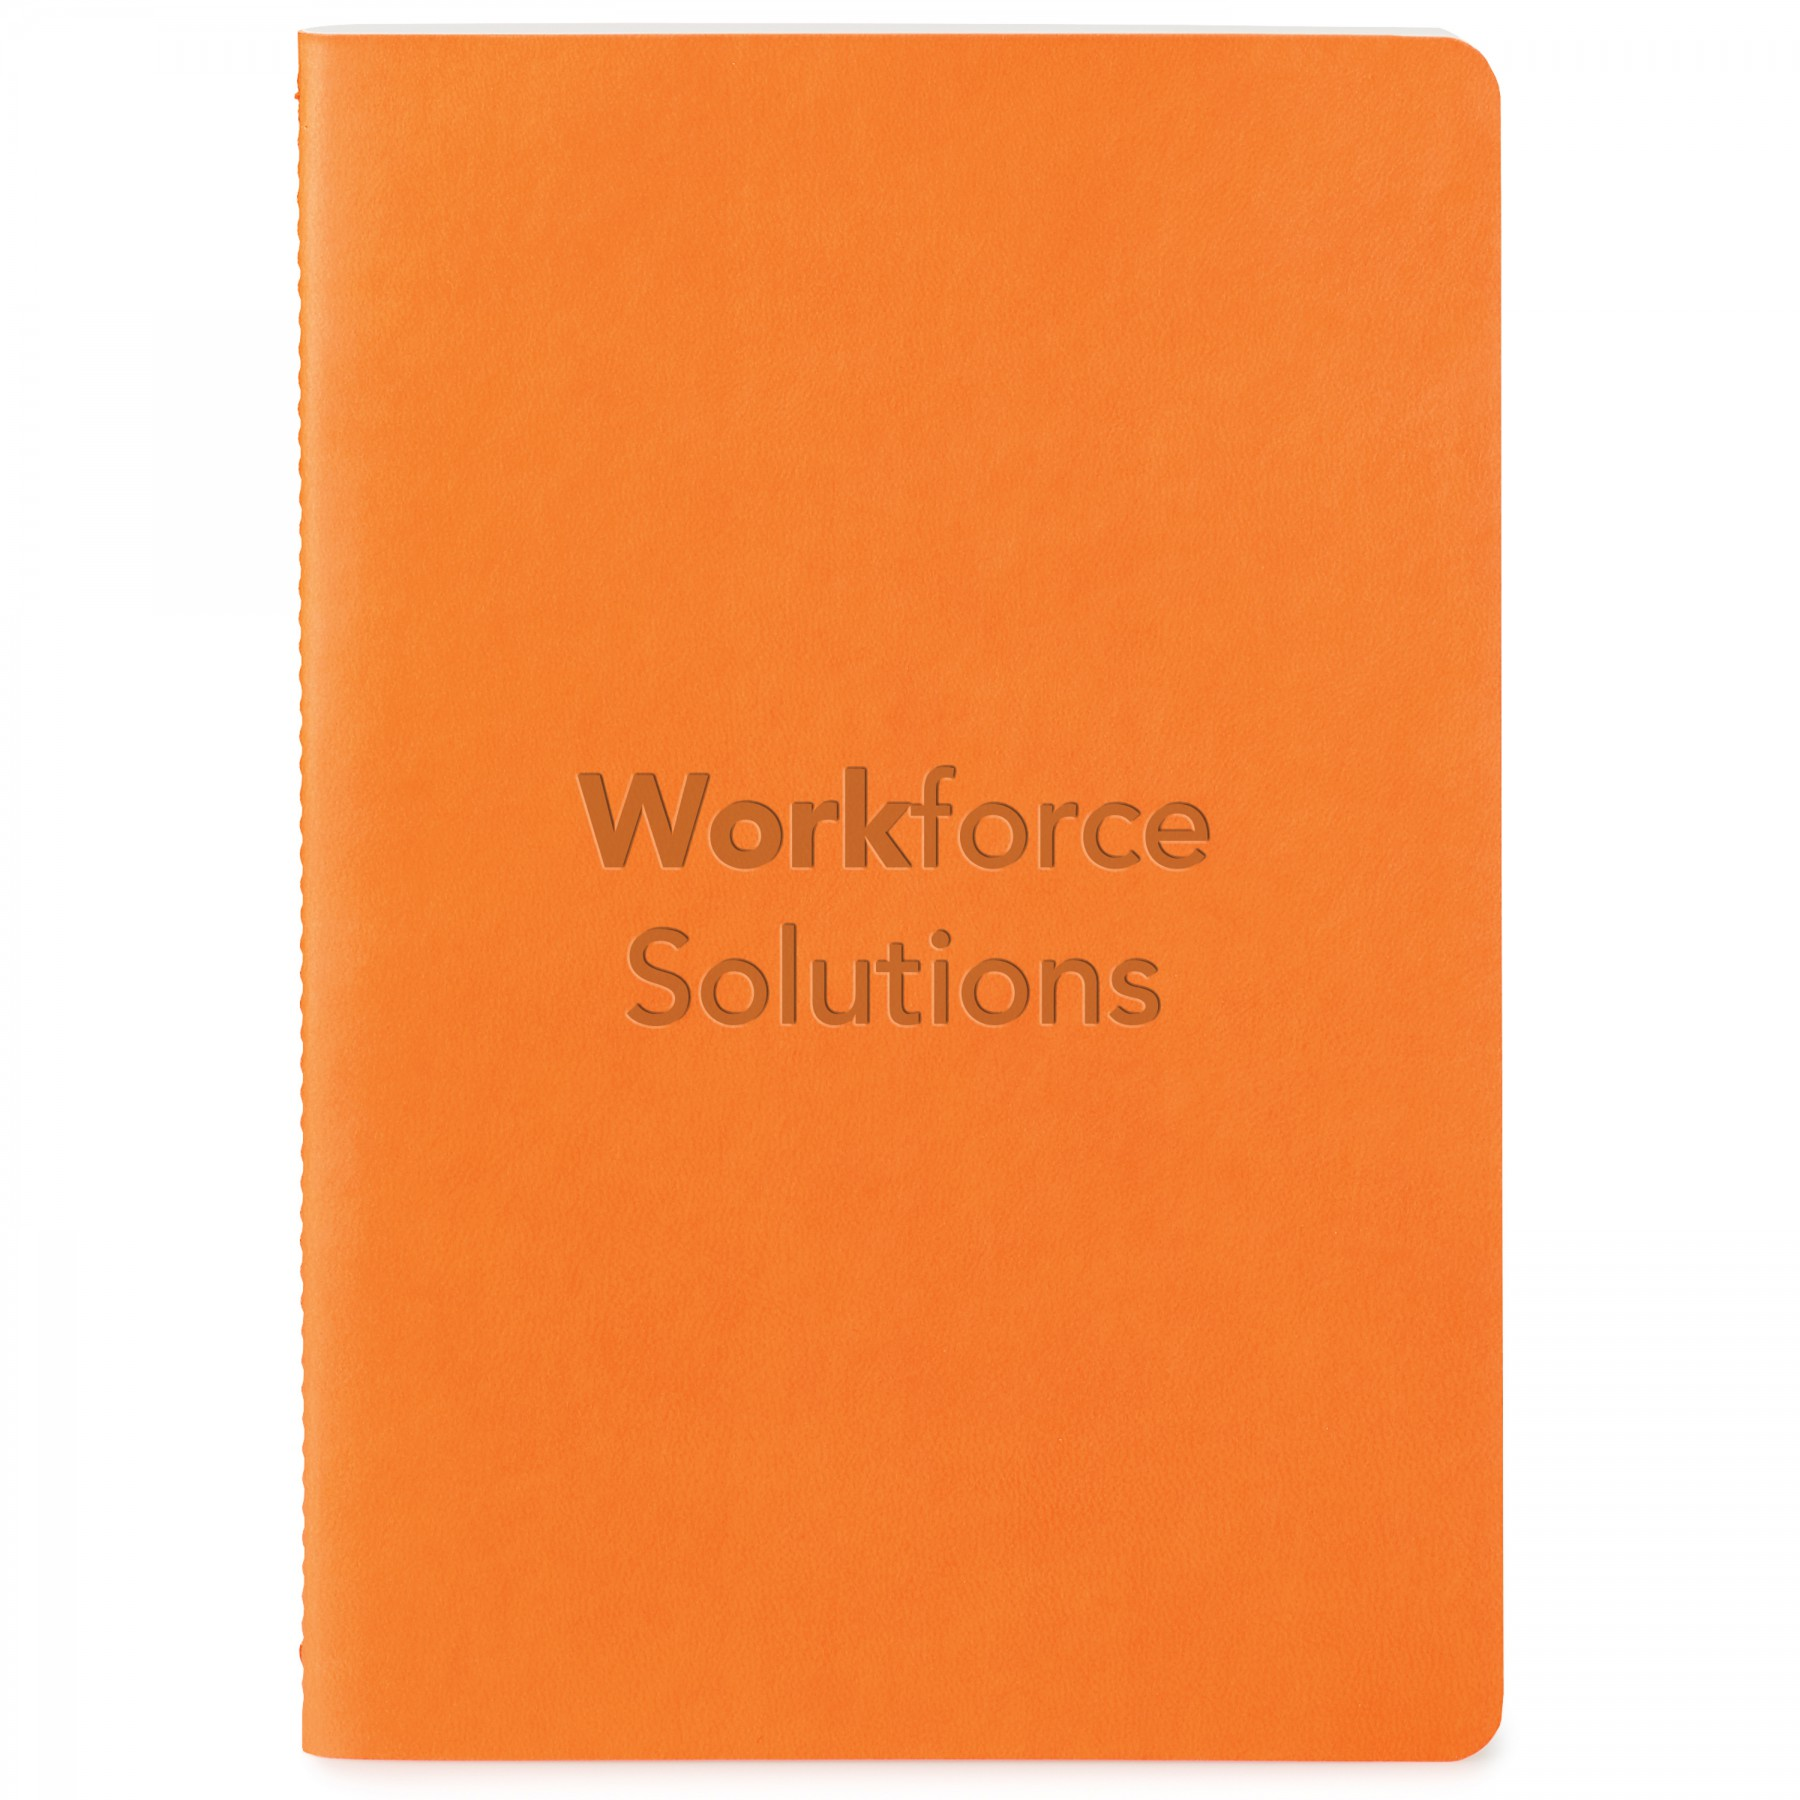 Donald Soft Cover Single Meeting Journal, ST4182, Debossed Logo